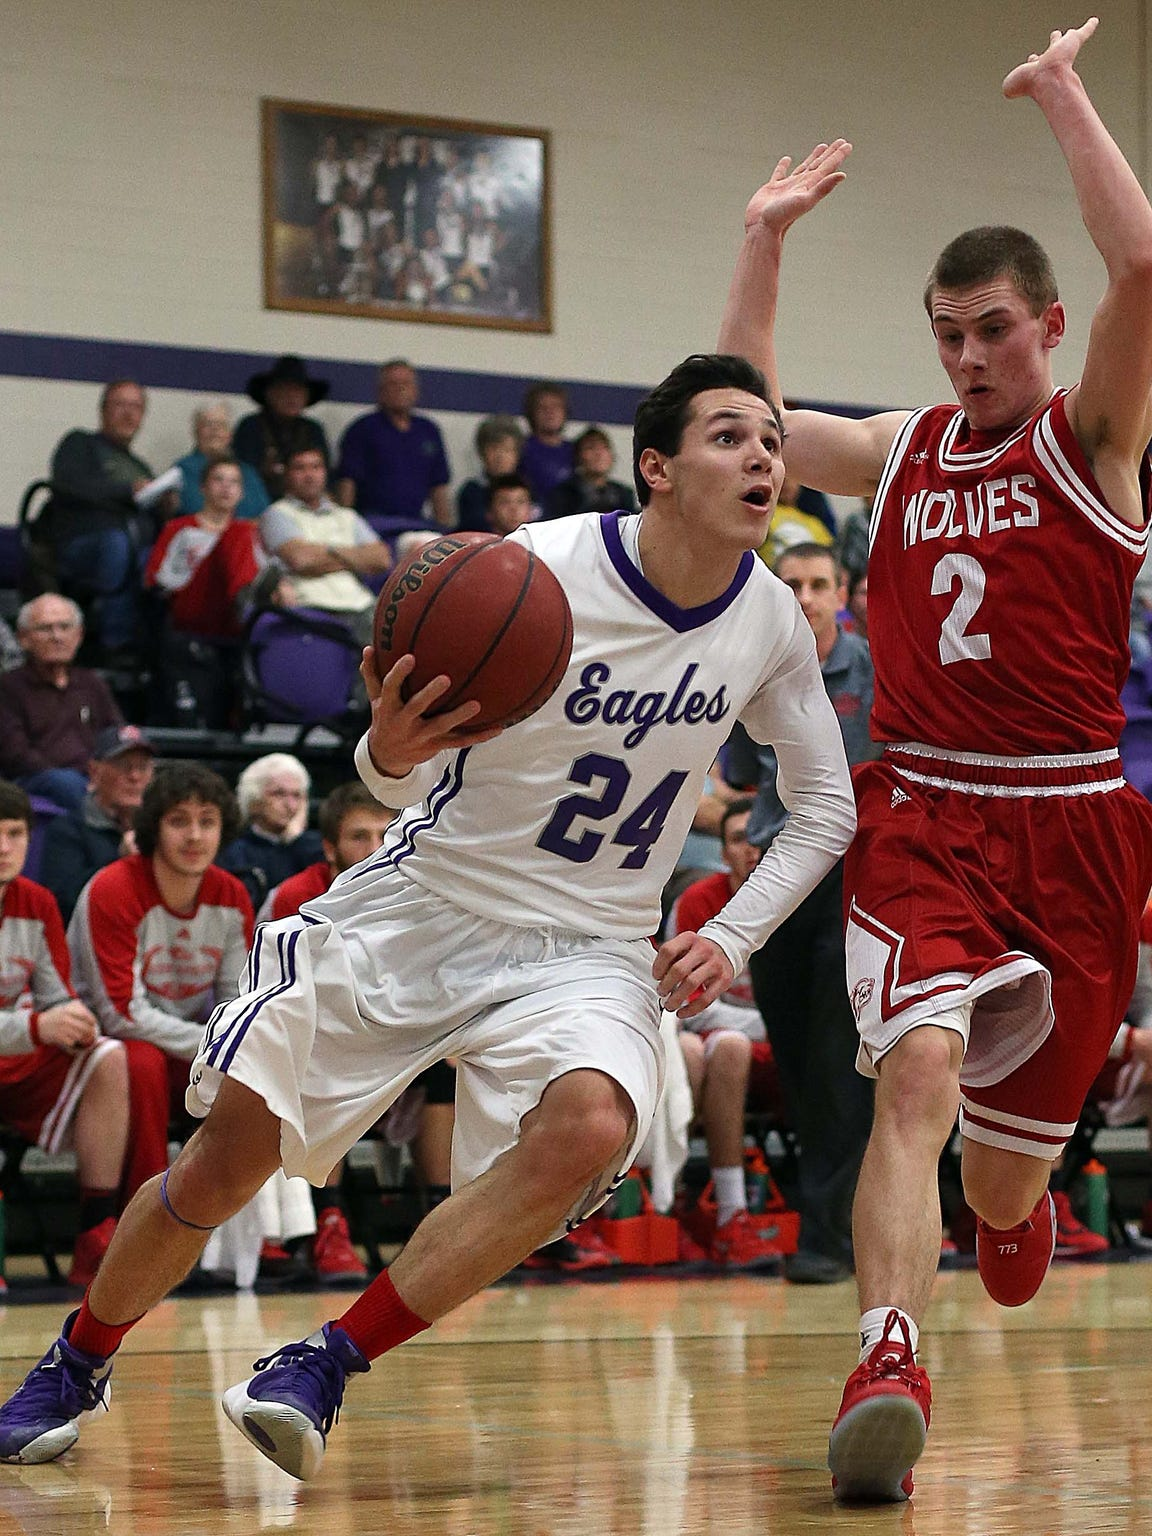 Fair Grove's Kyle Cavanaugh (24) drives to the basket.